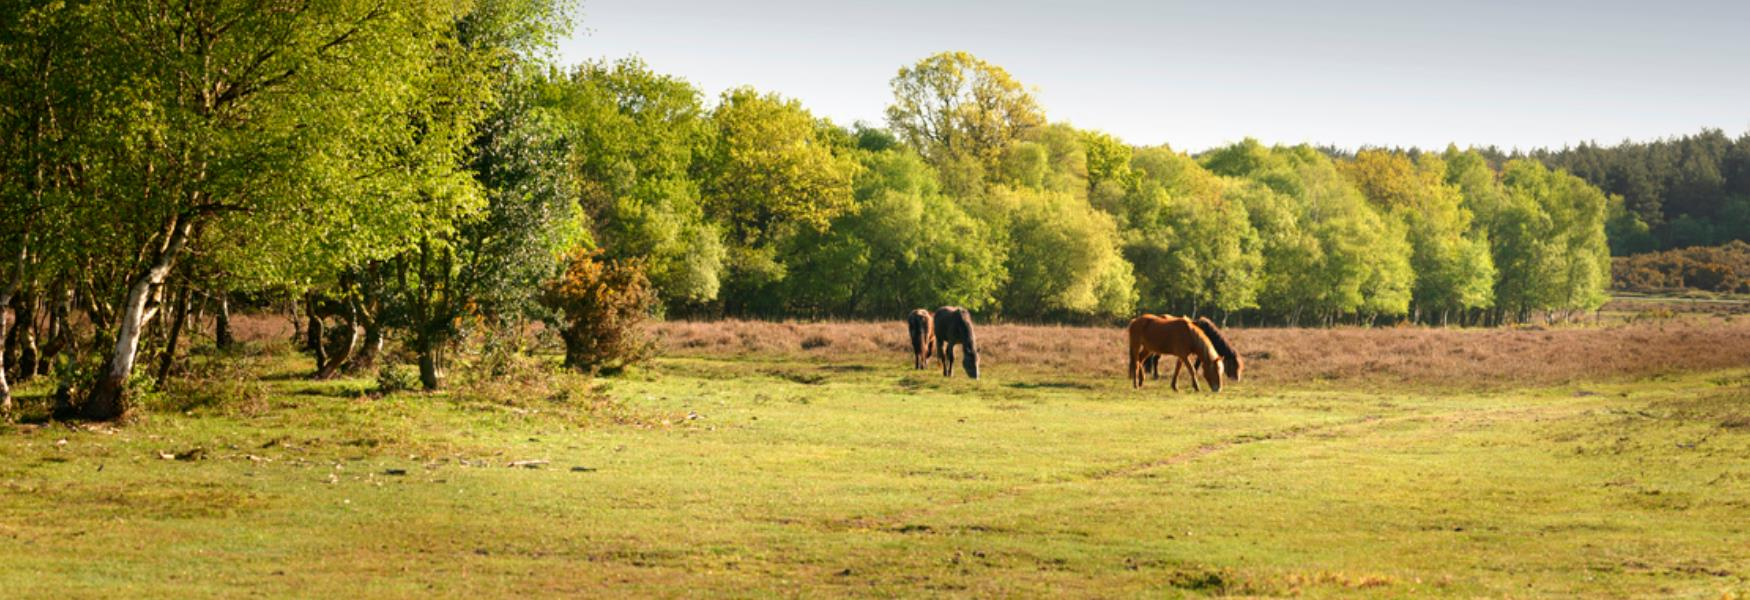 new forest ponies grazing in spring landscape in the new forest